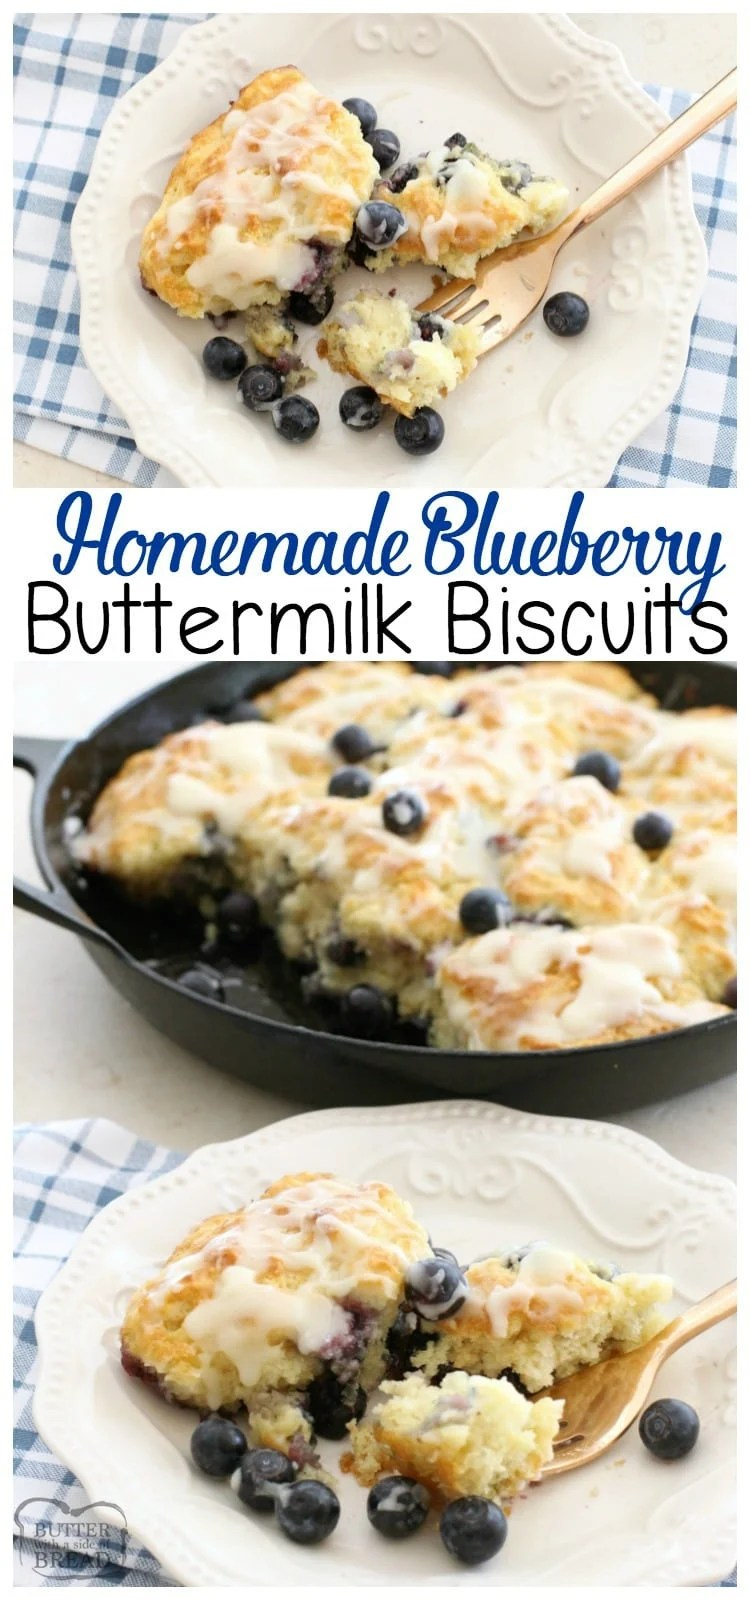 Soft, buttery & easy to make- these Blueberry Buttermilk Biscuits are perfect any time of the day! Easy homemade biscuit recipe from Butter With A Side of Bread